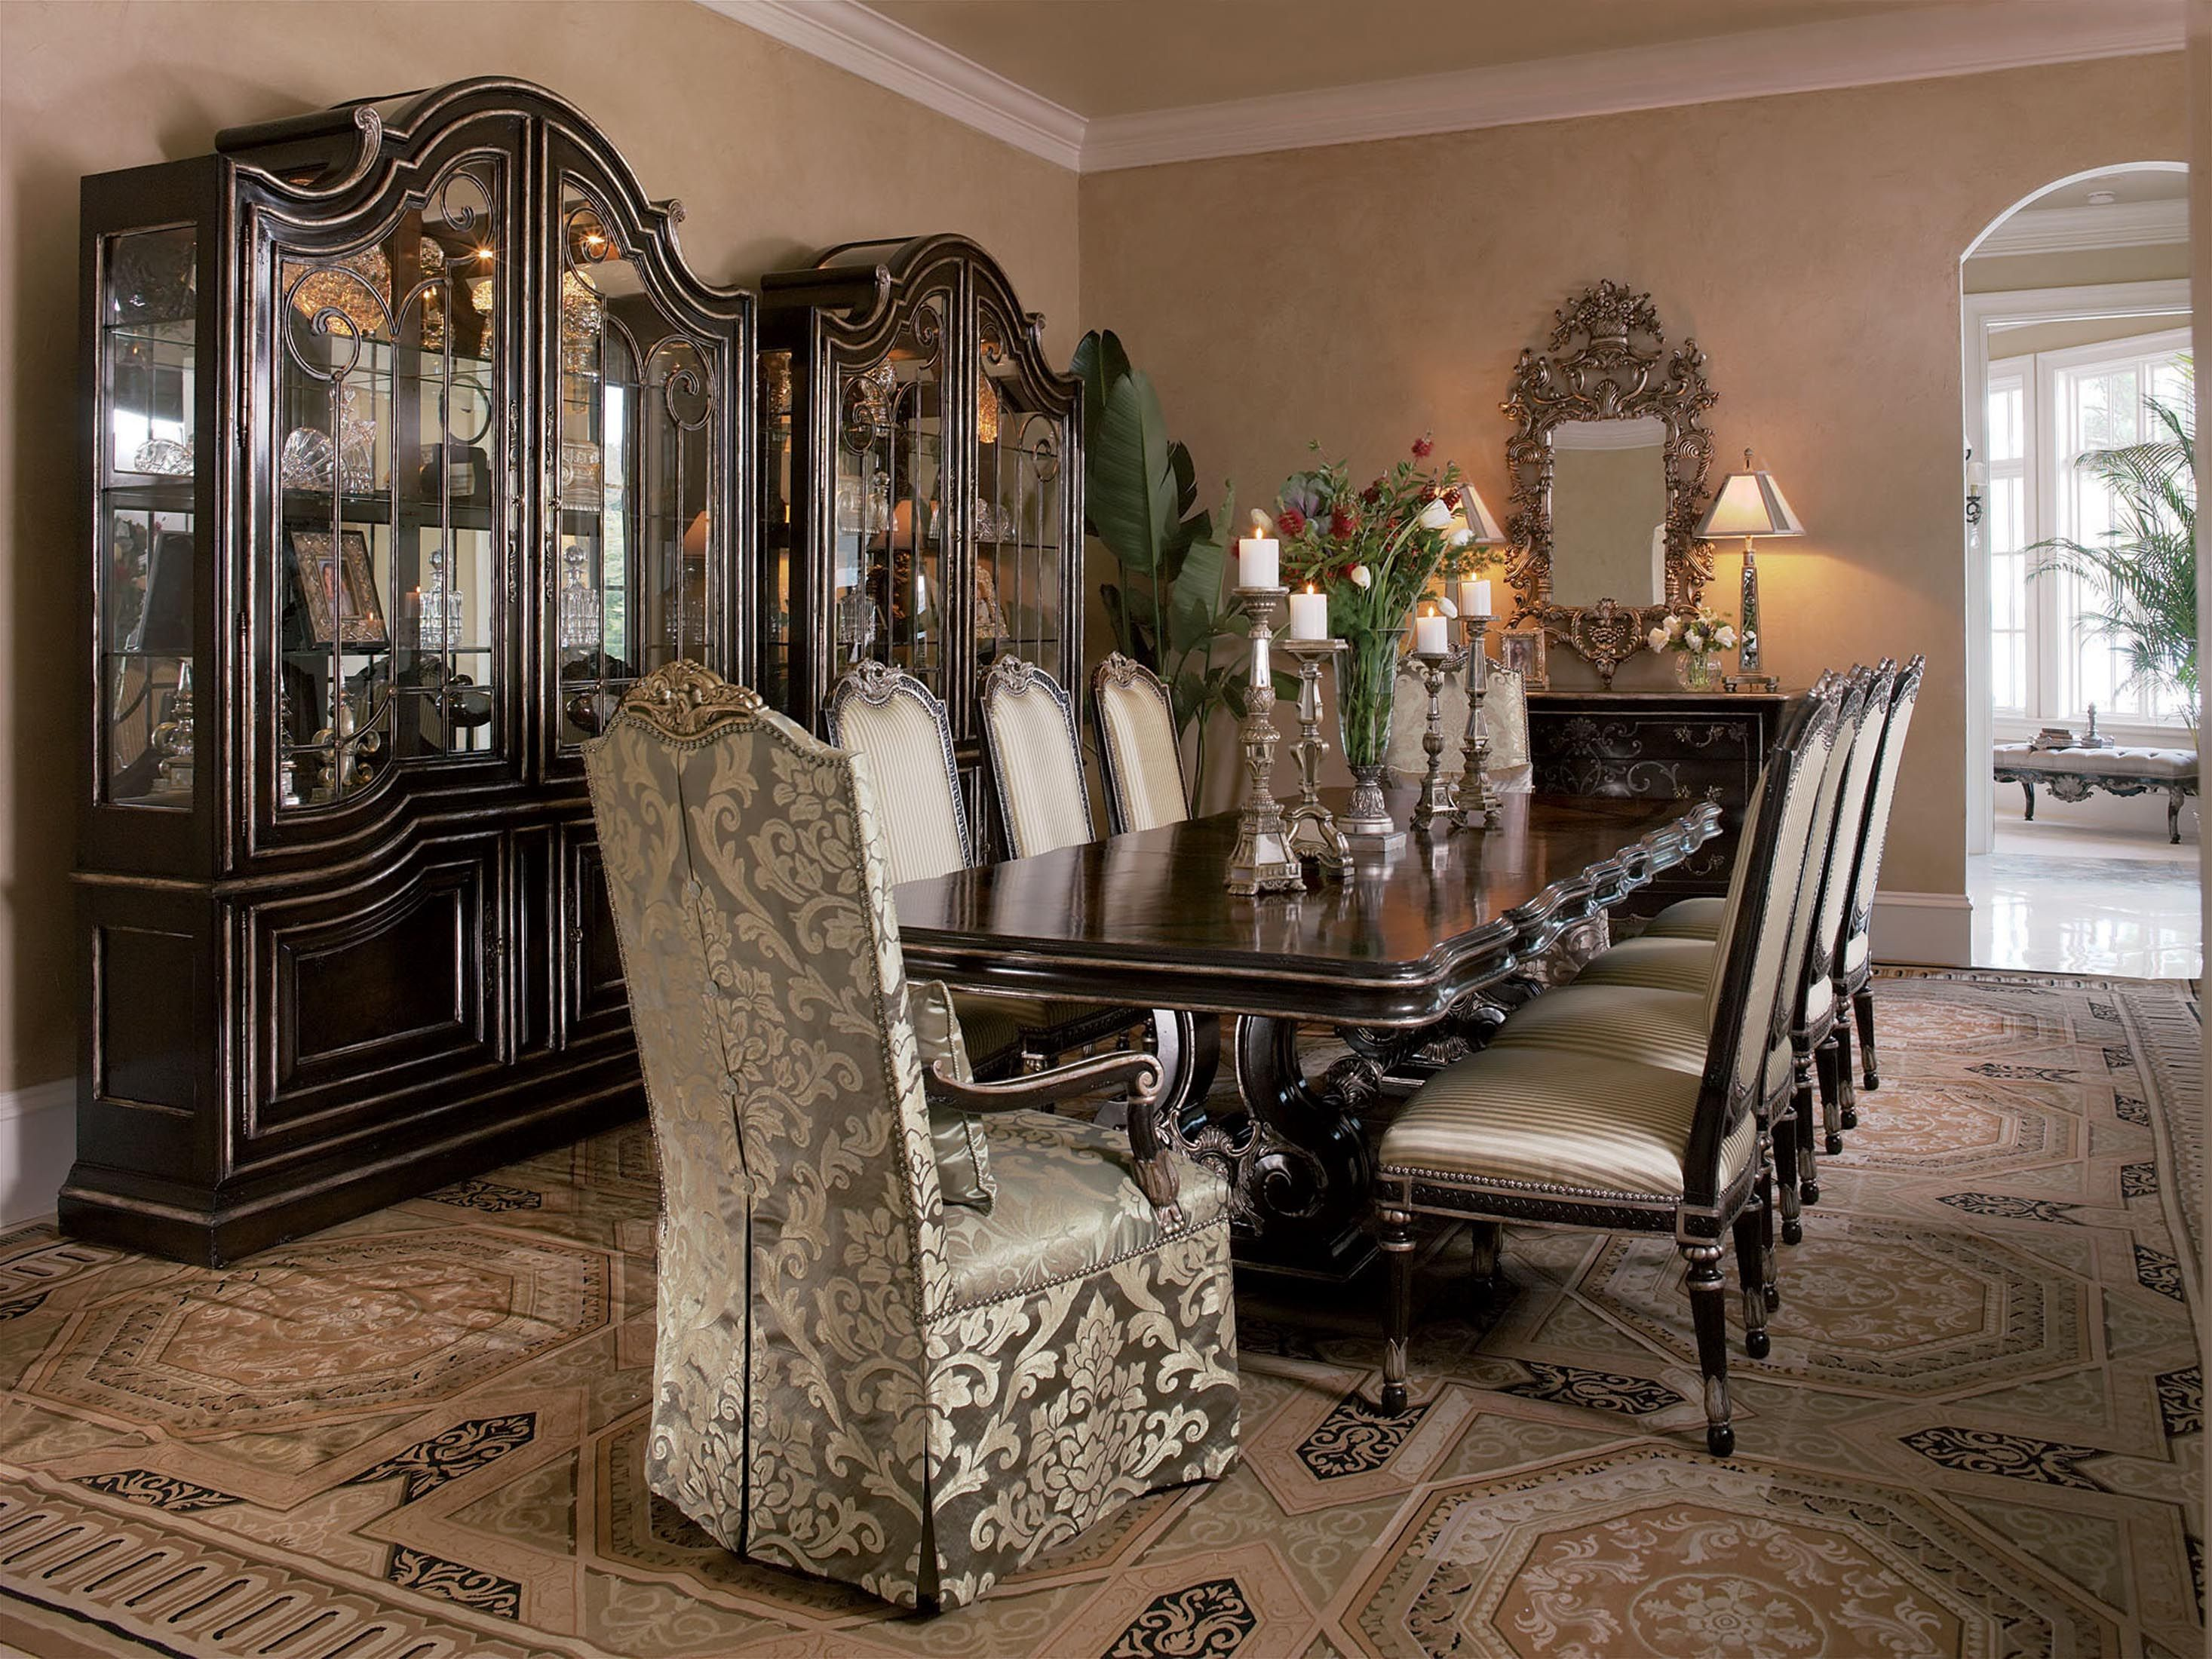 Simple Dining Room Sets In Houston Tx On A Budget Lovely With Dining Room  Sets In